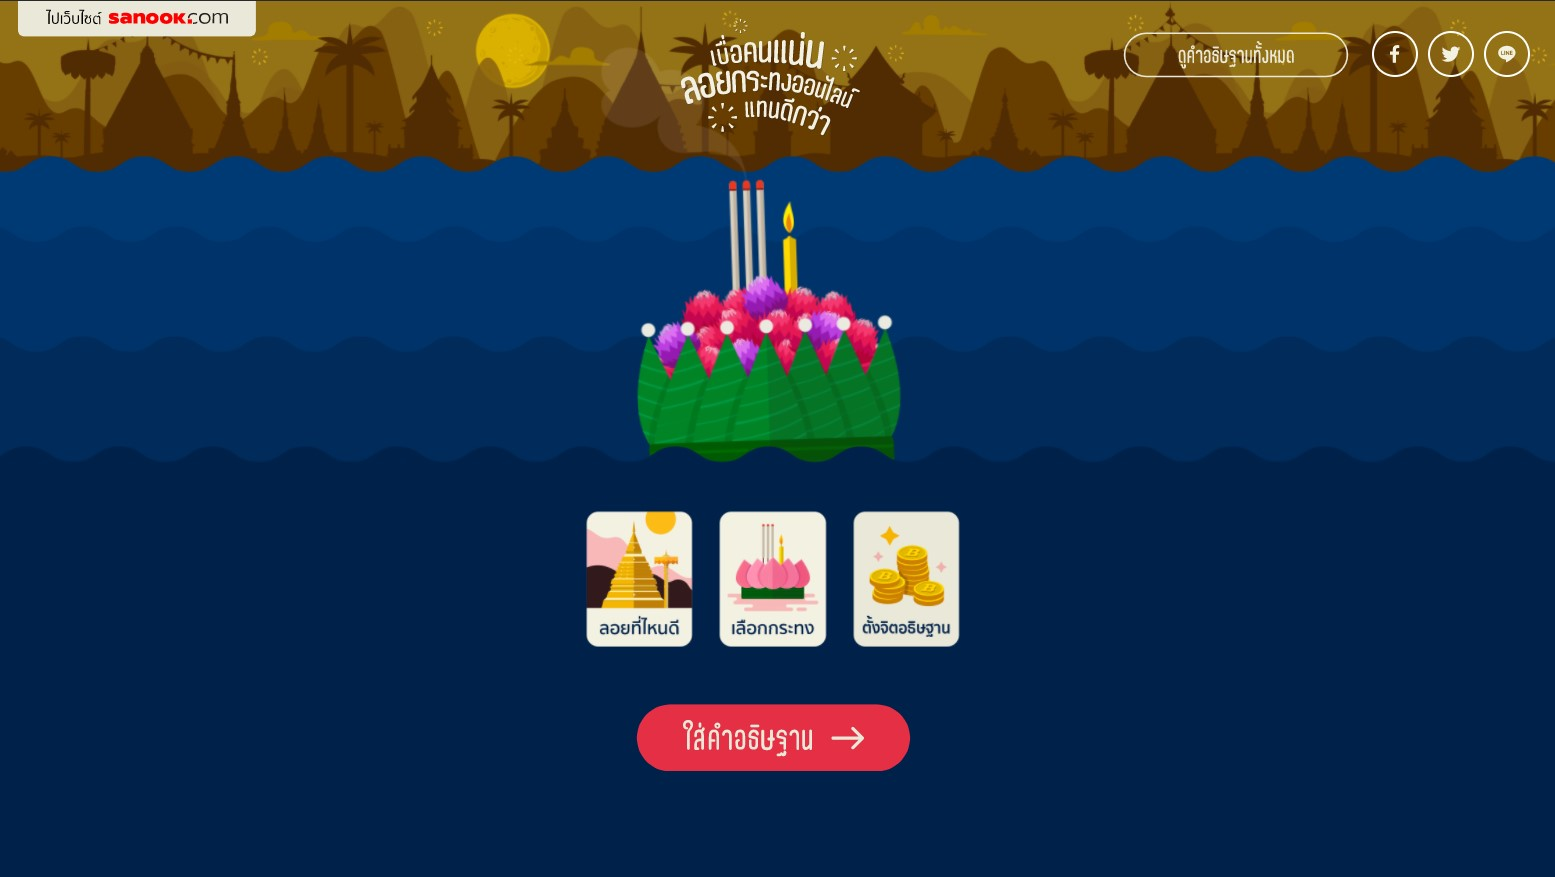 Loy Kratong Online